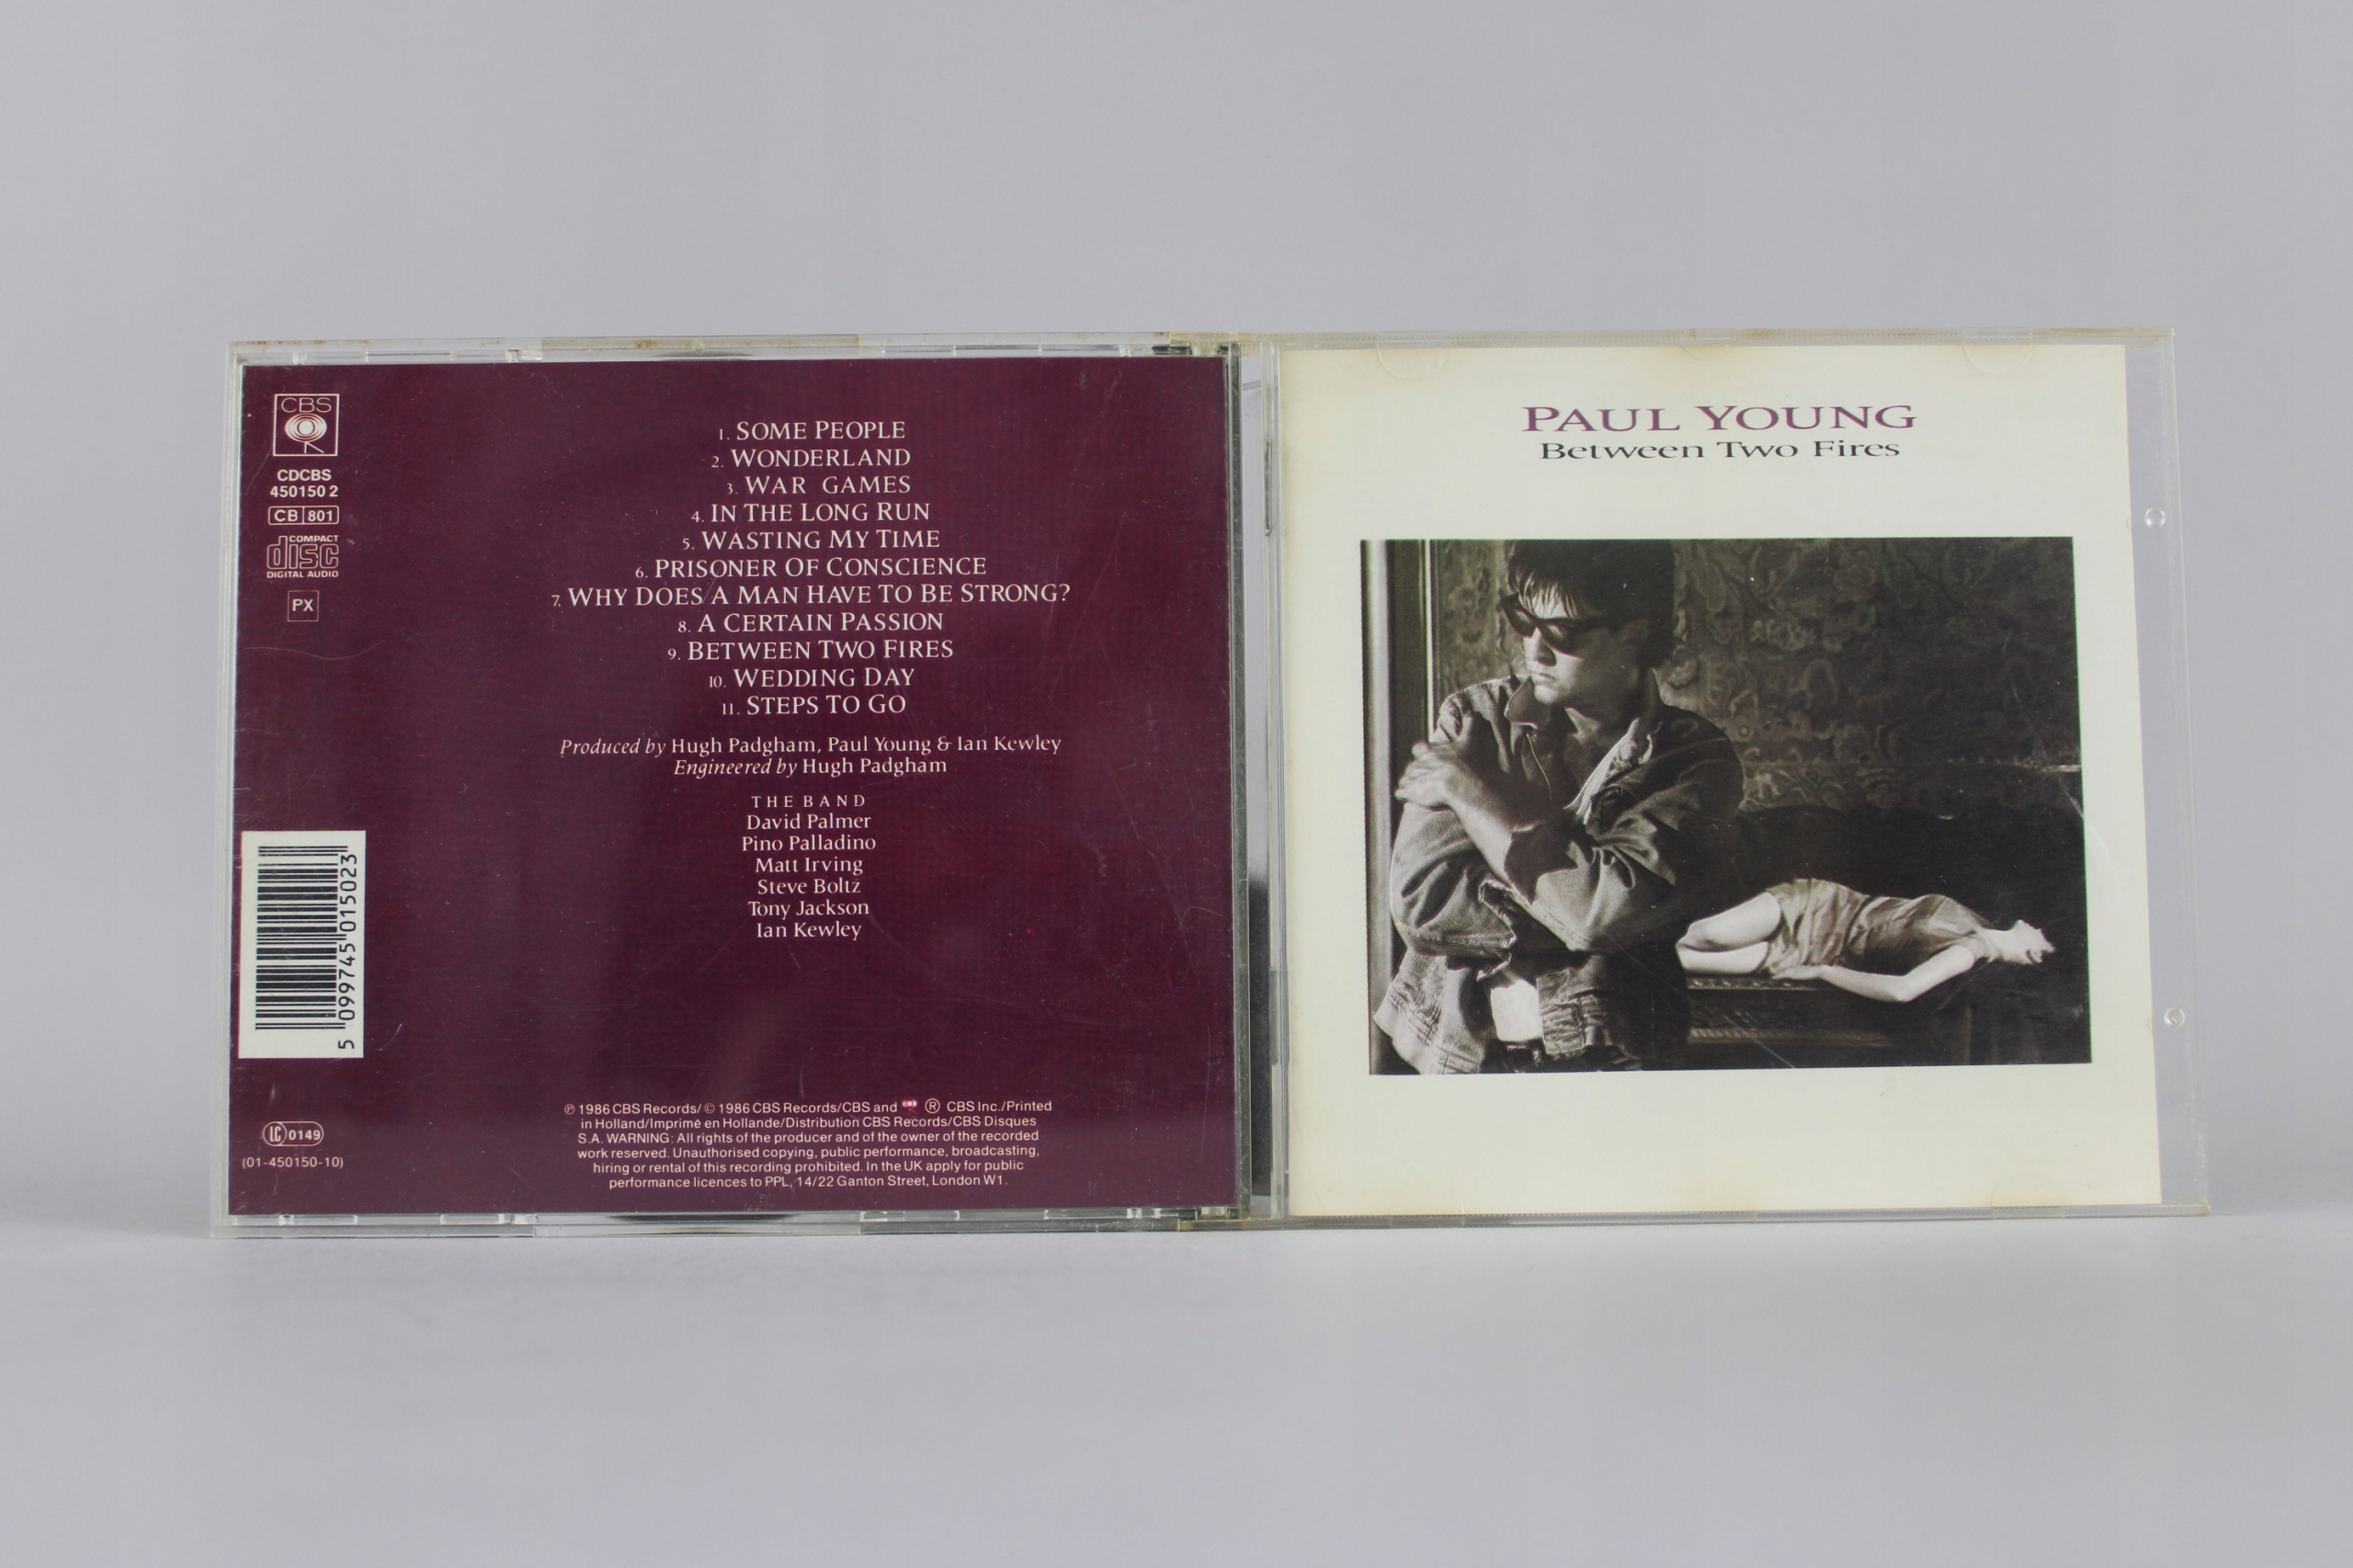 Paul Young – Between Two Fires